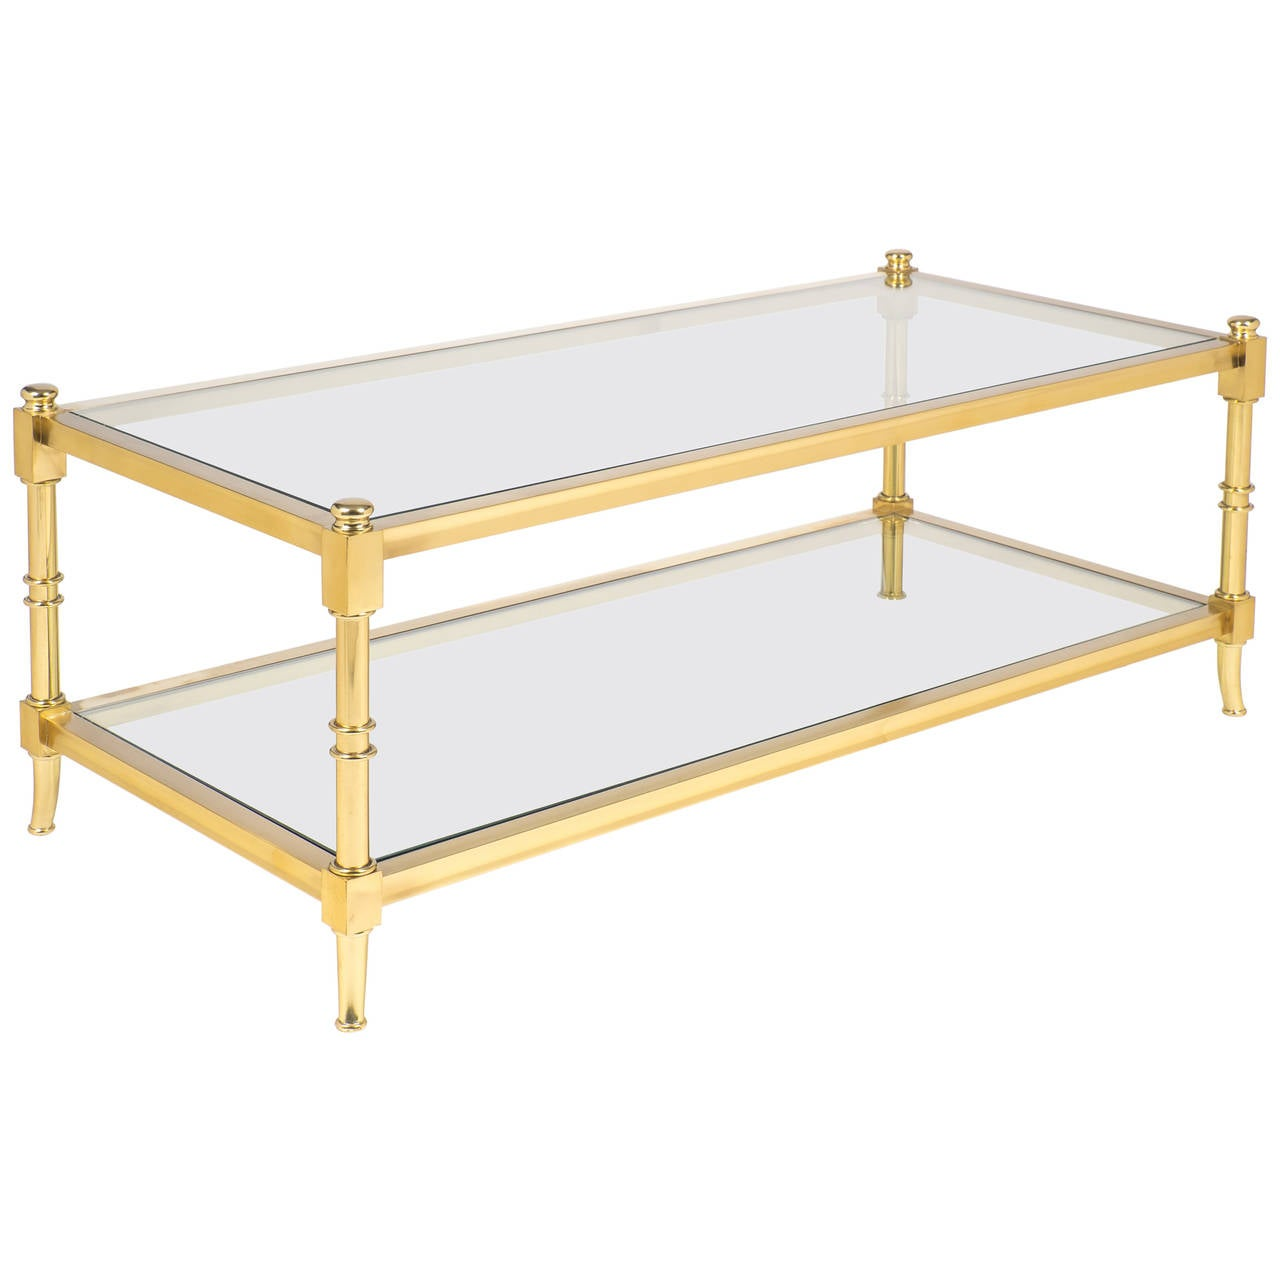 French vintage gilt brass coffee table by maison raphael at 1stdibs Antique brass coffee table